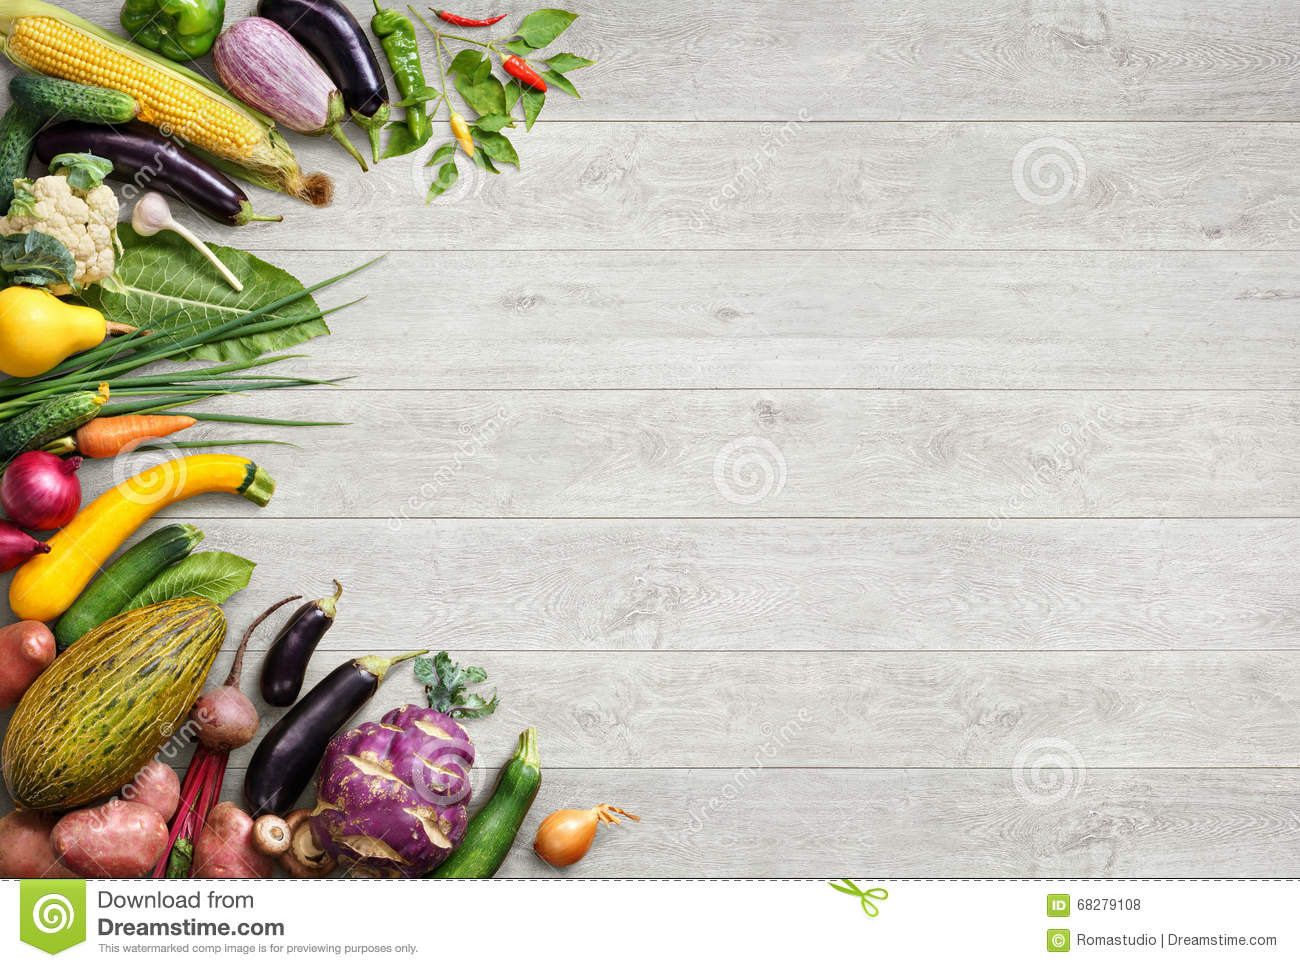 Deluxe Food Background Photography Different Fruits